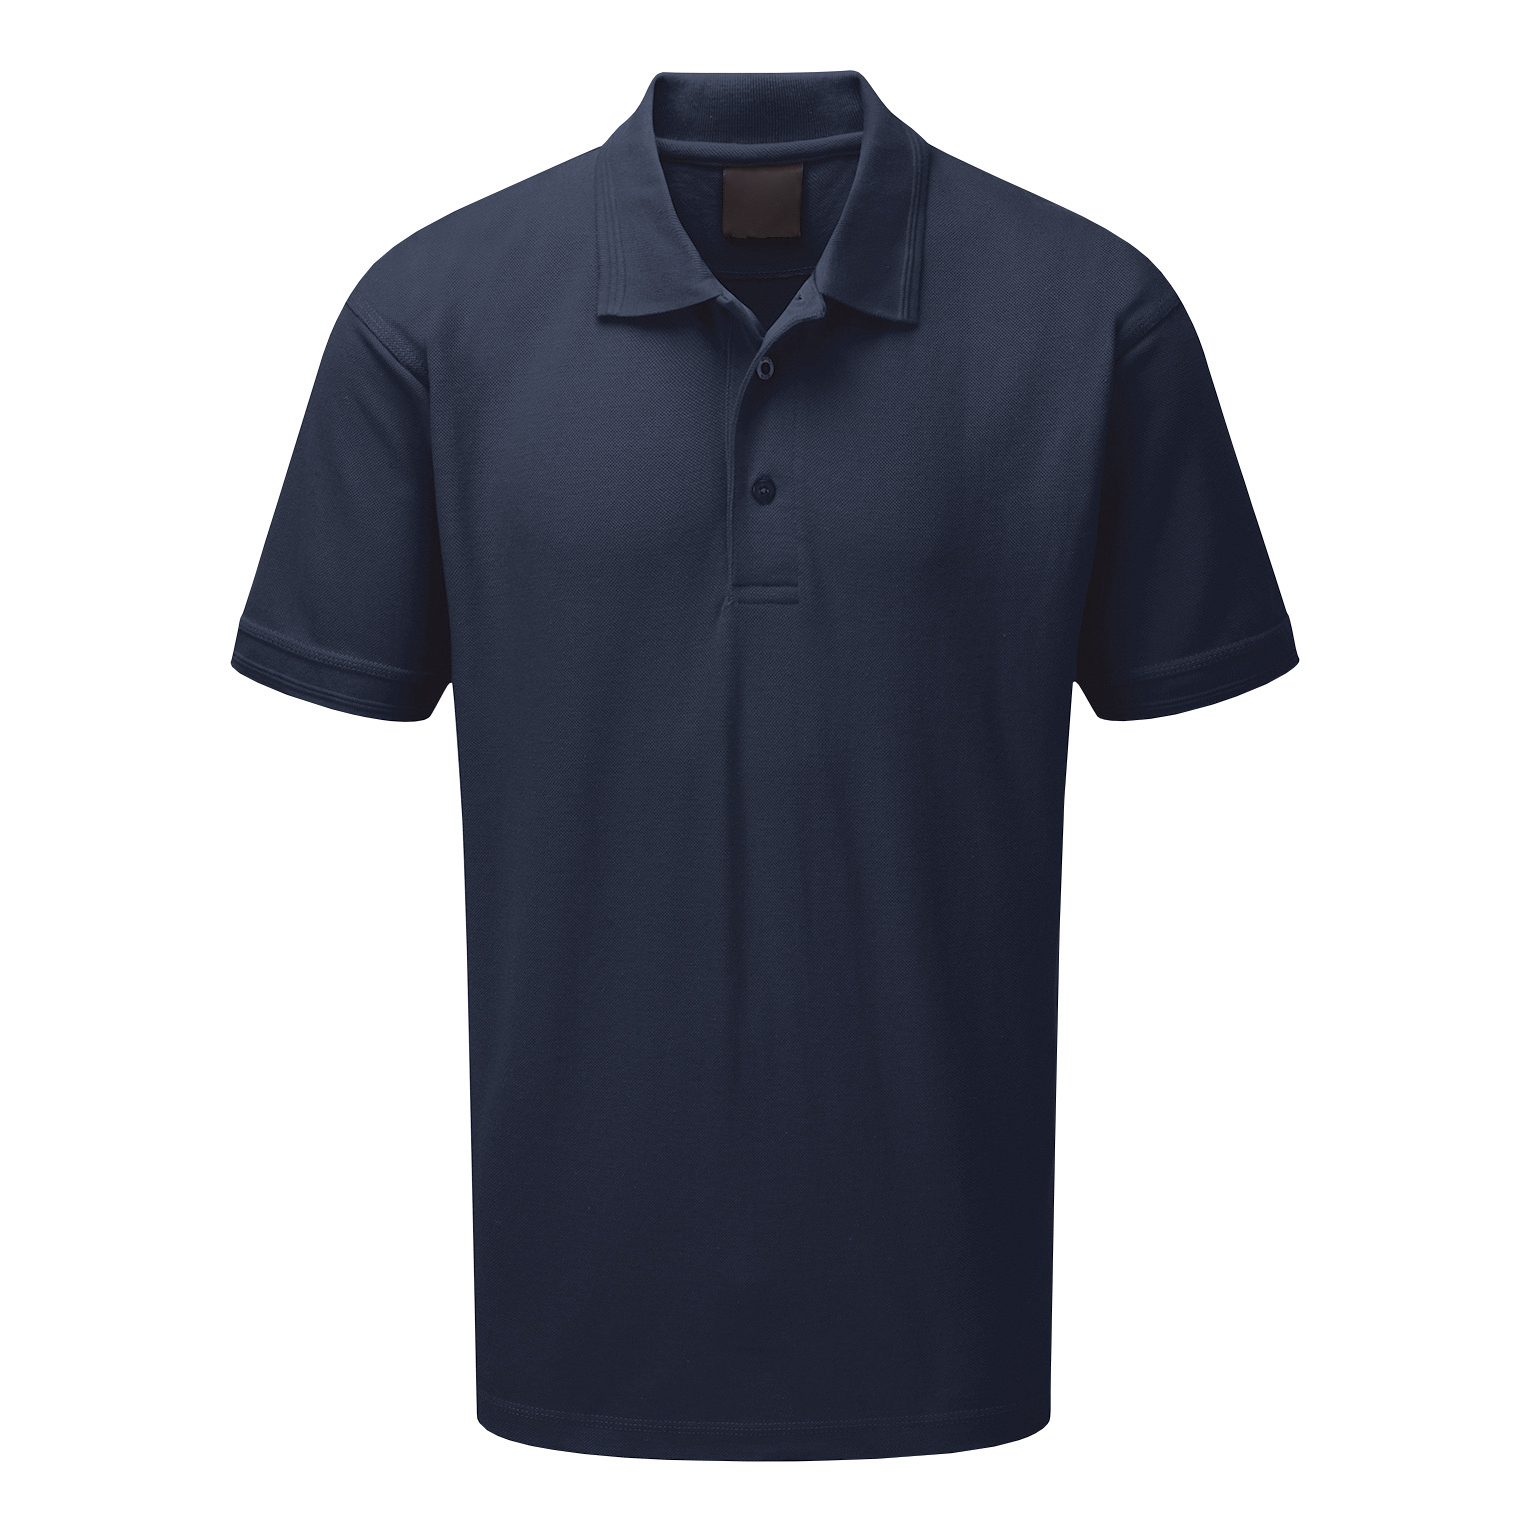 Supertouch Polo Shirt Classic Polycotton Medium Navy Ref 56CN2 *Approx 3 Day Leadtime*